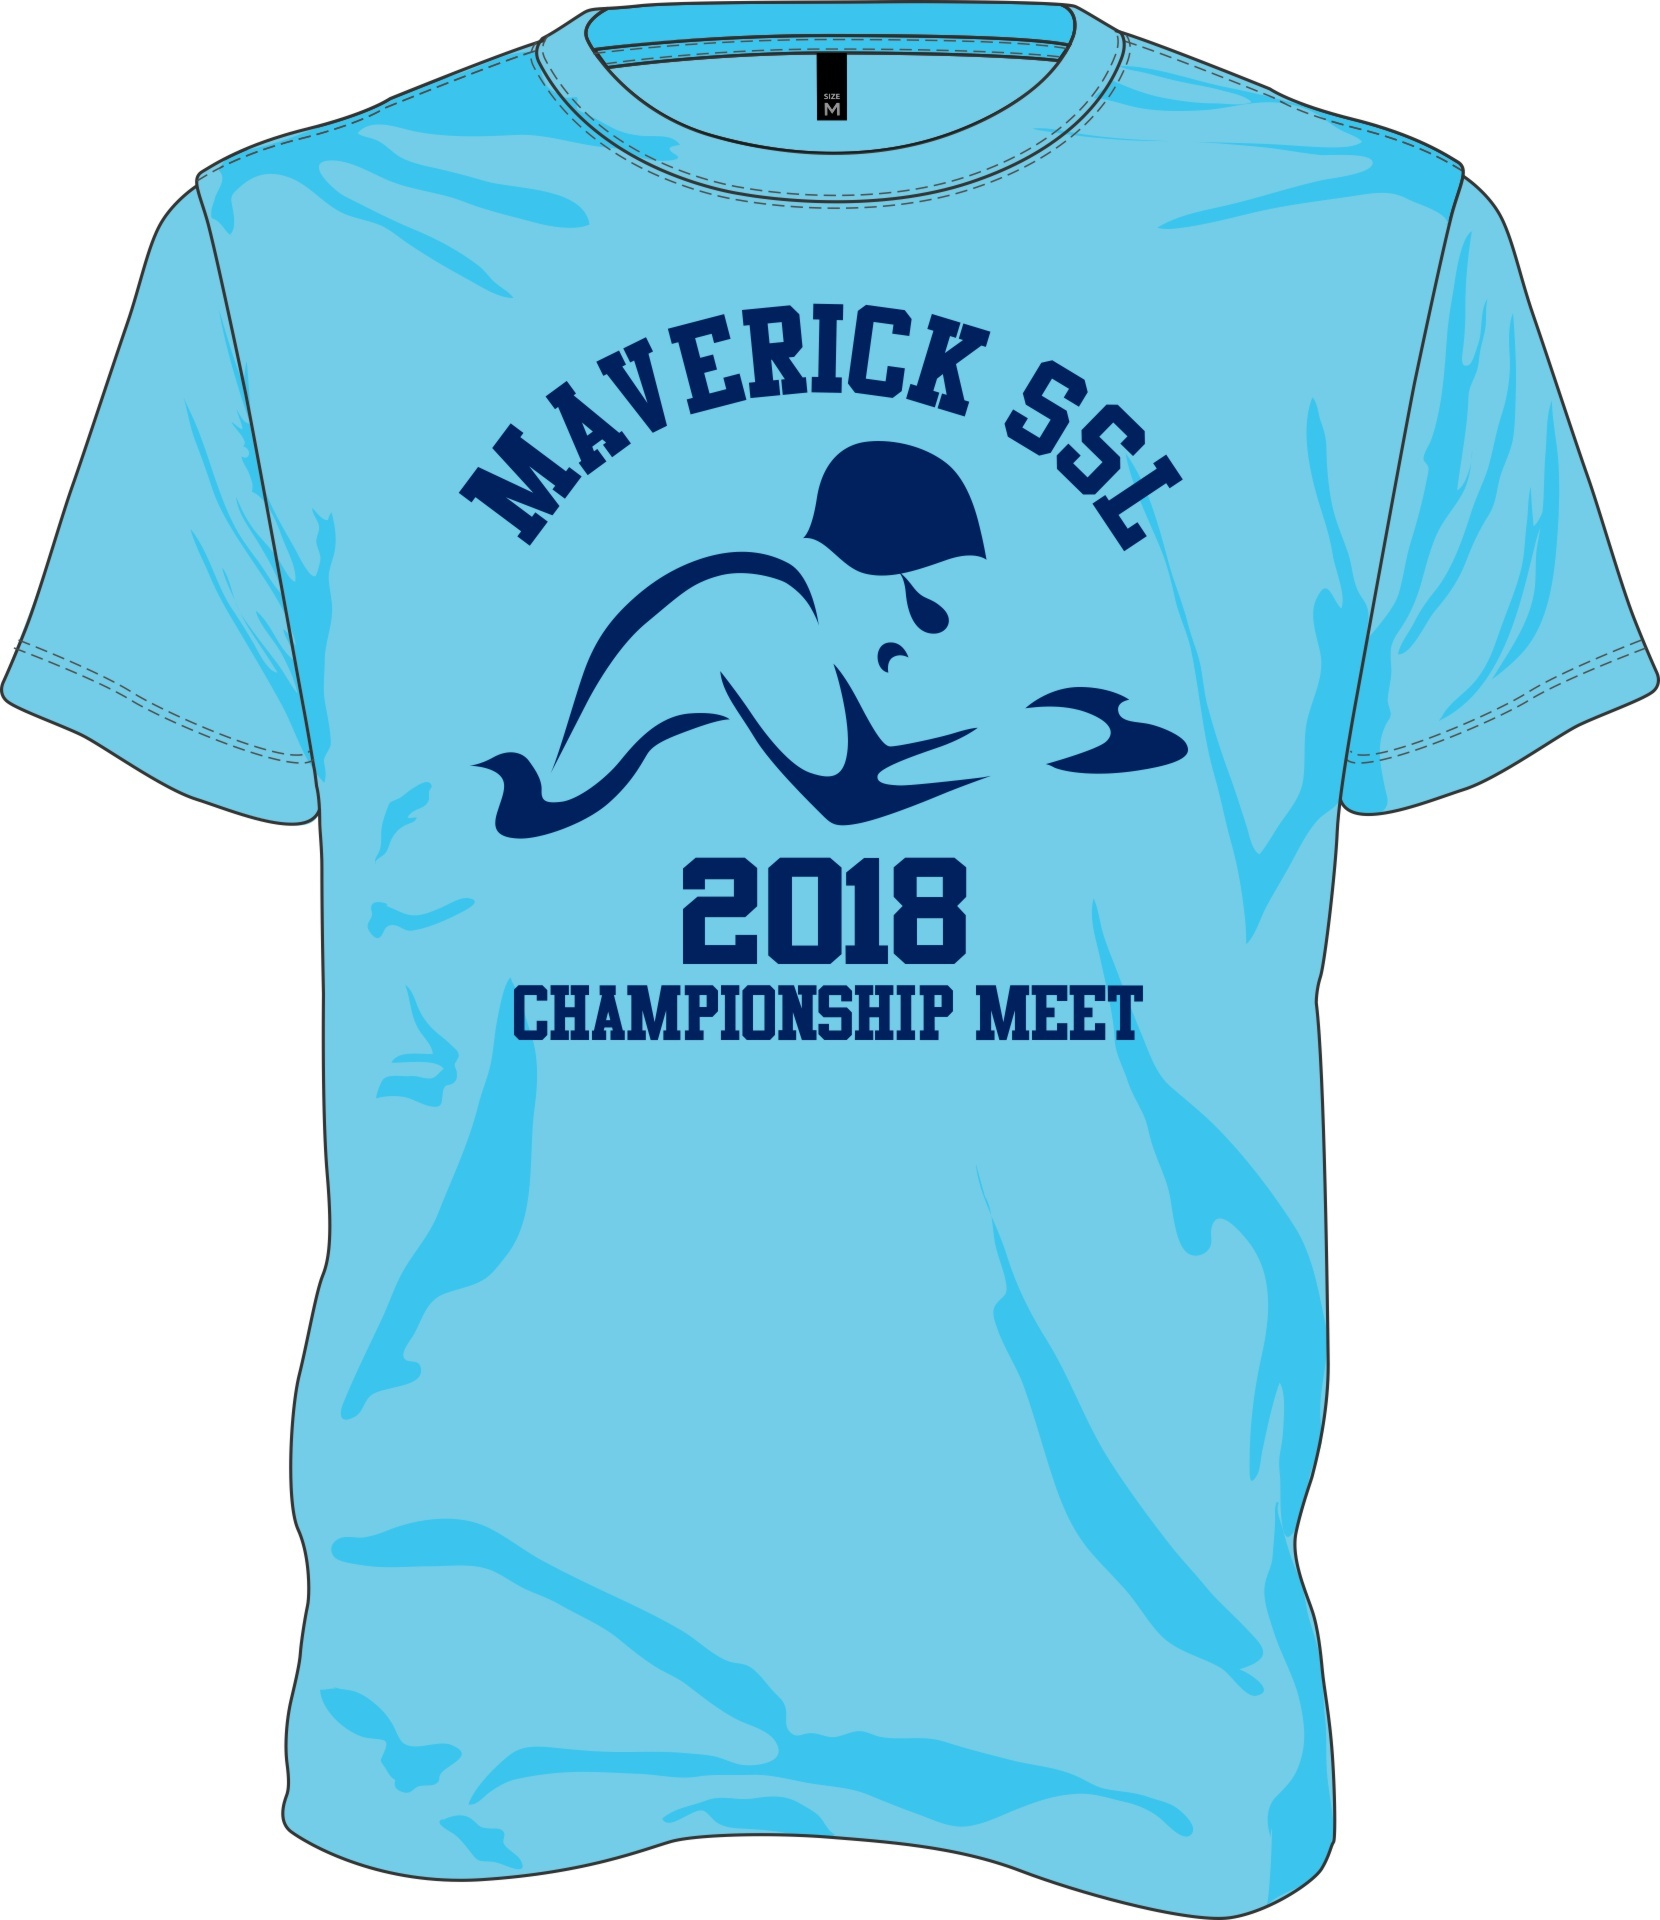 2018 Champs Meet Shirt front